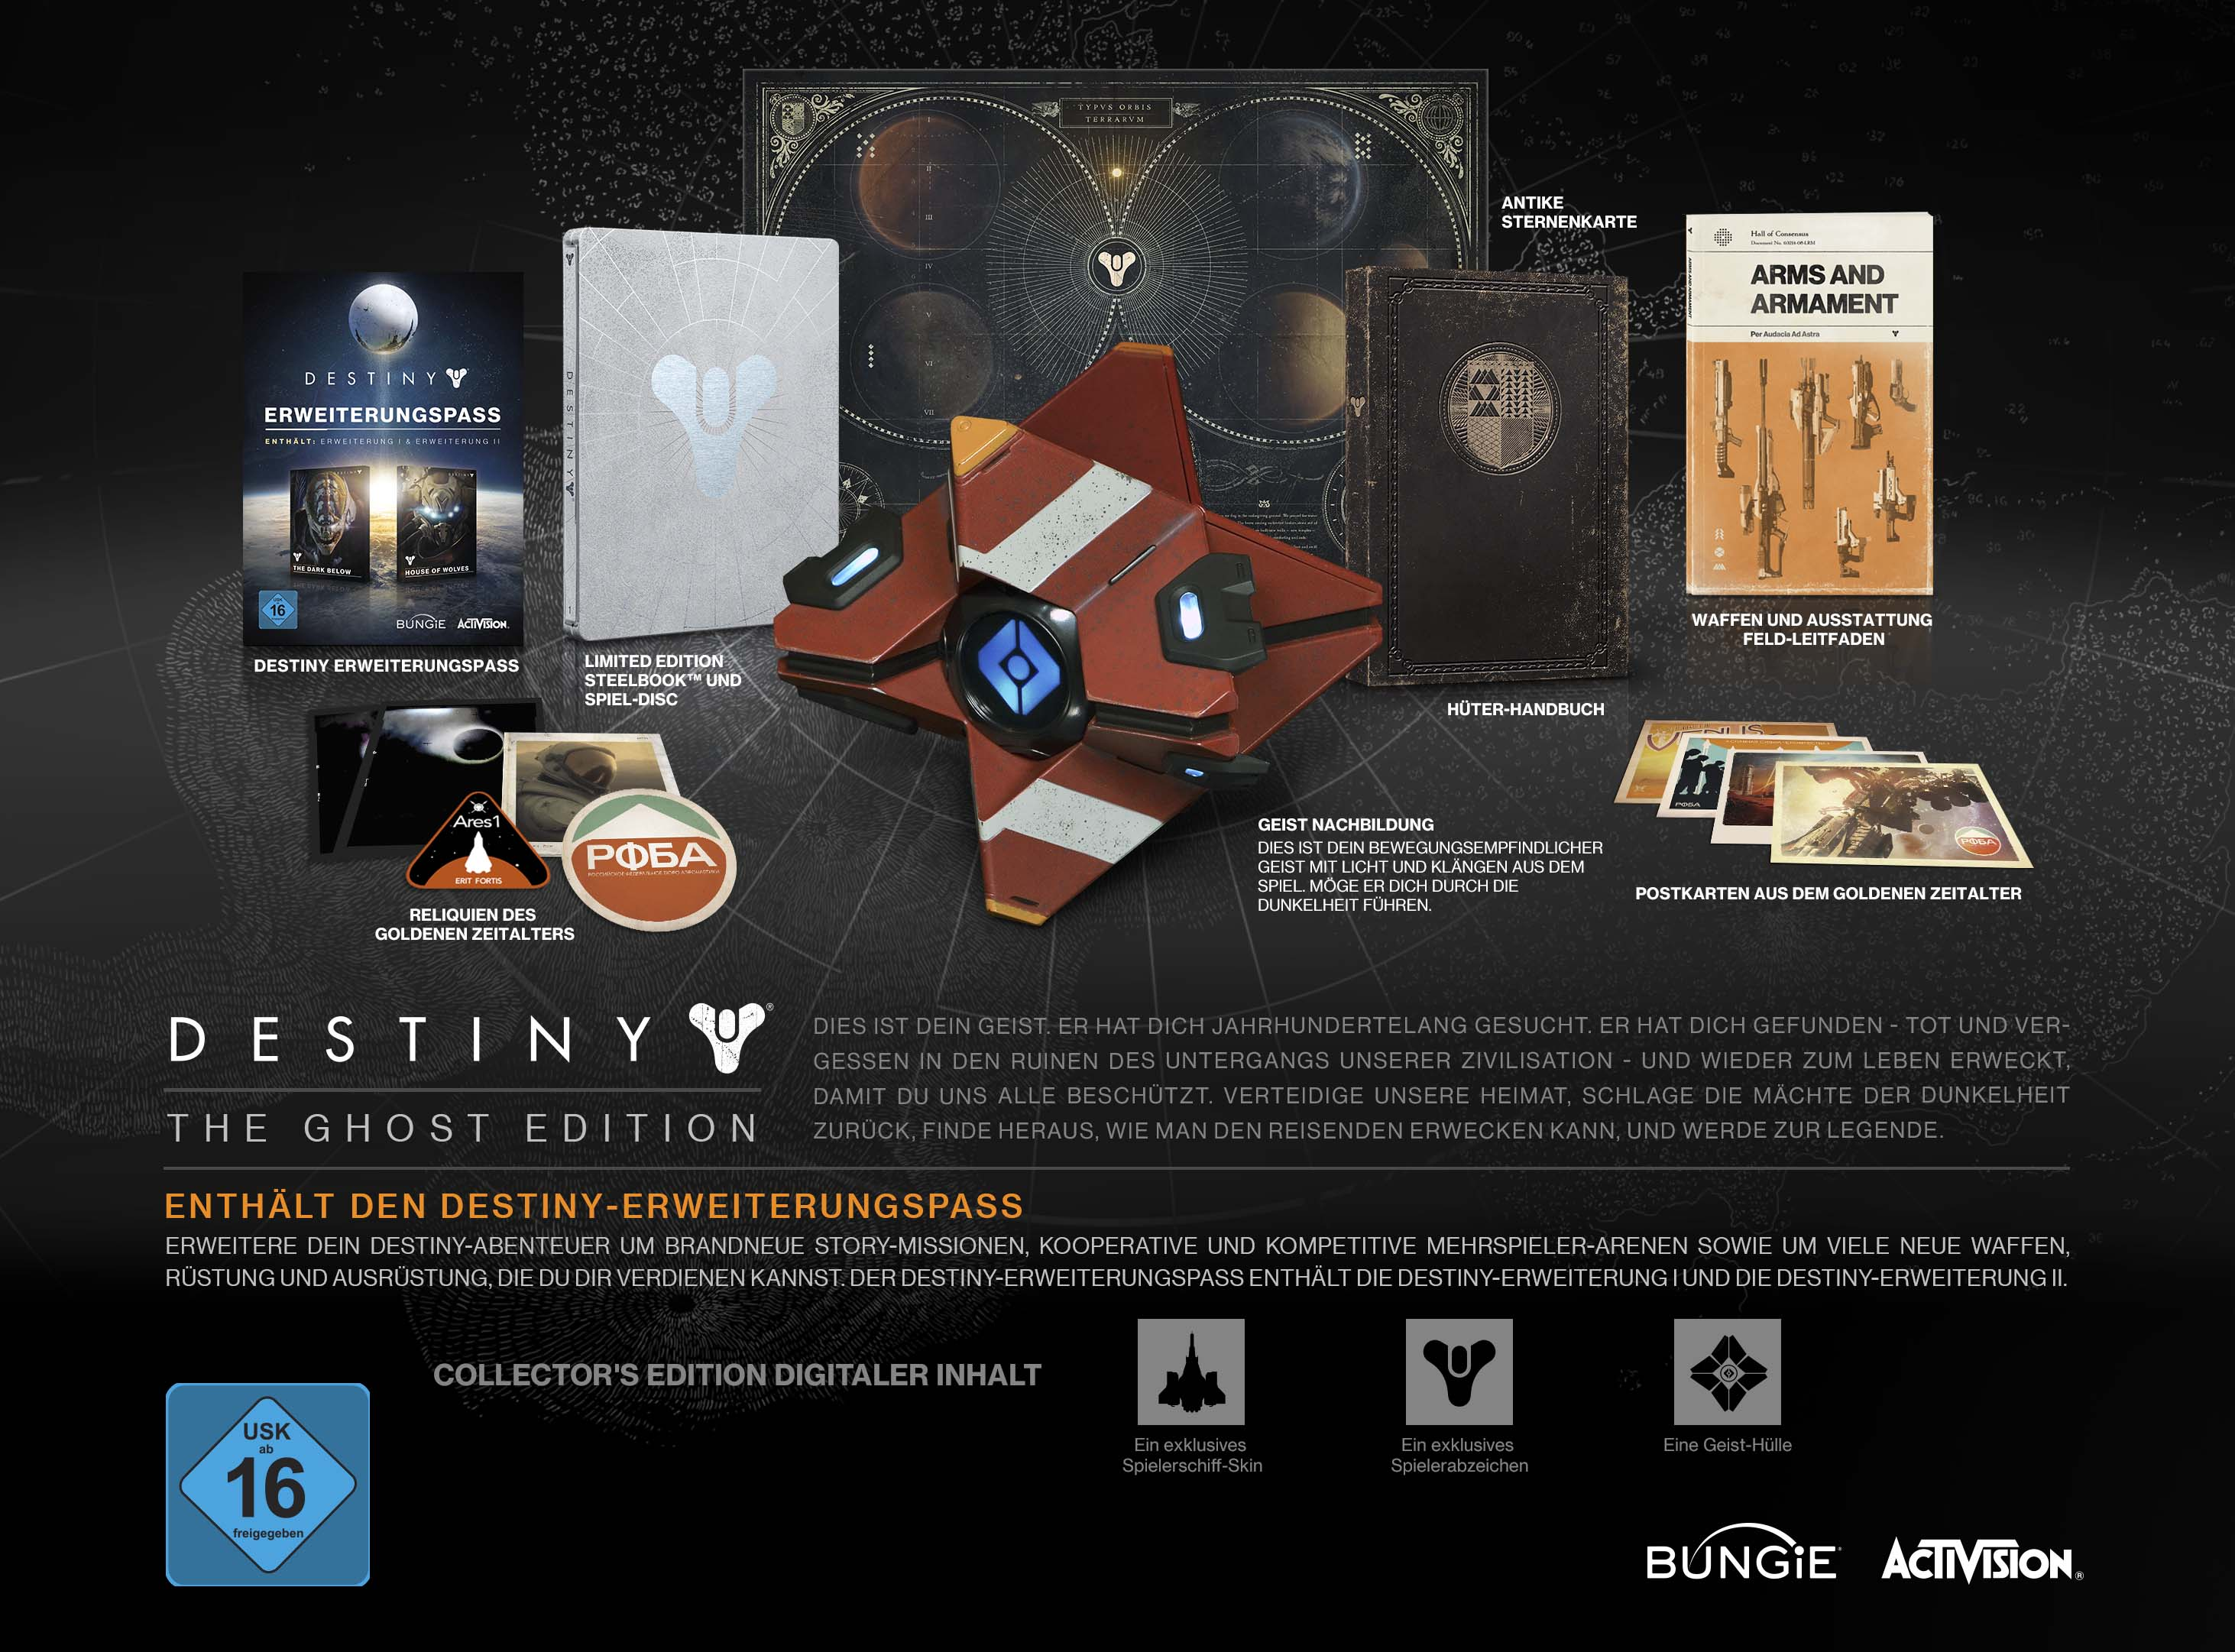 destiny_the_ghost_edition_inhalte